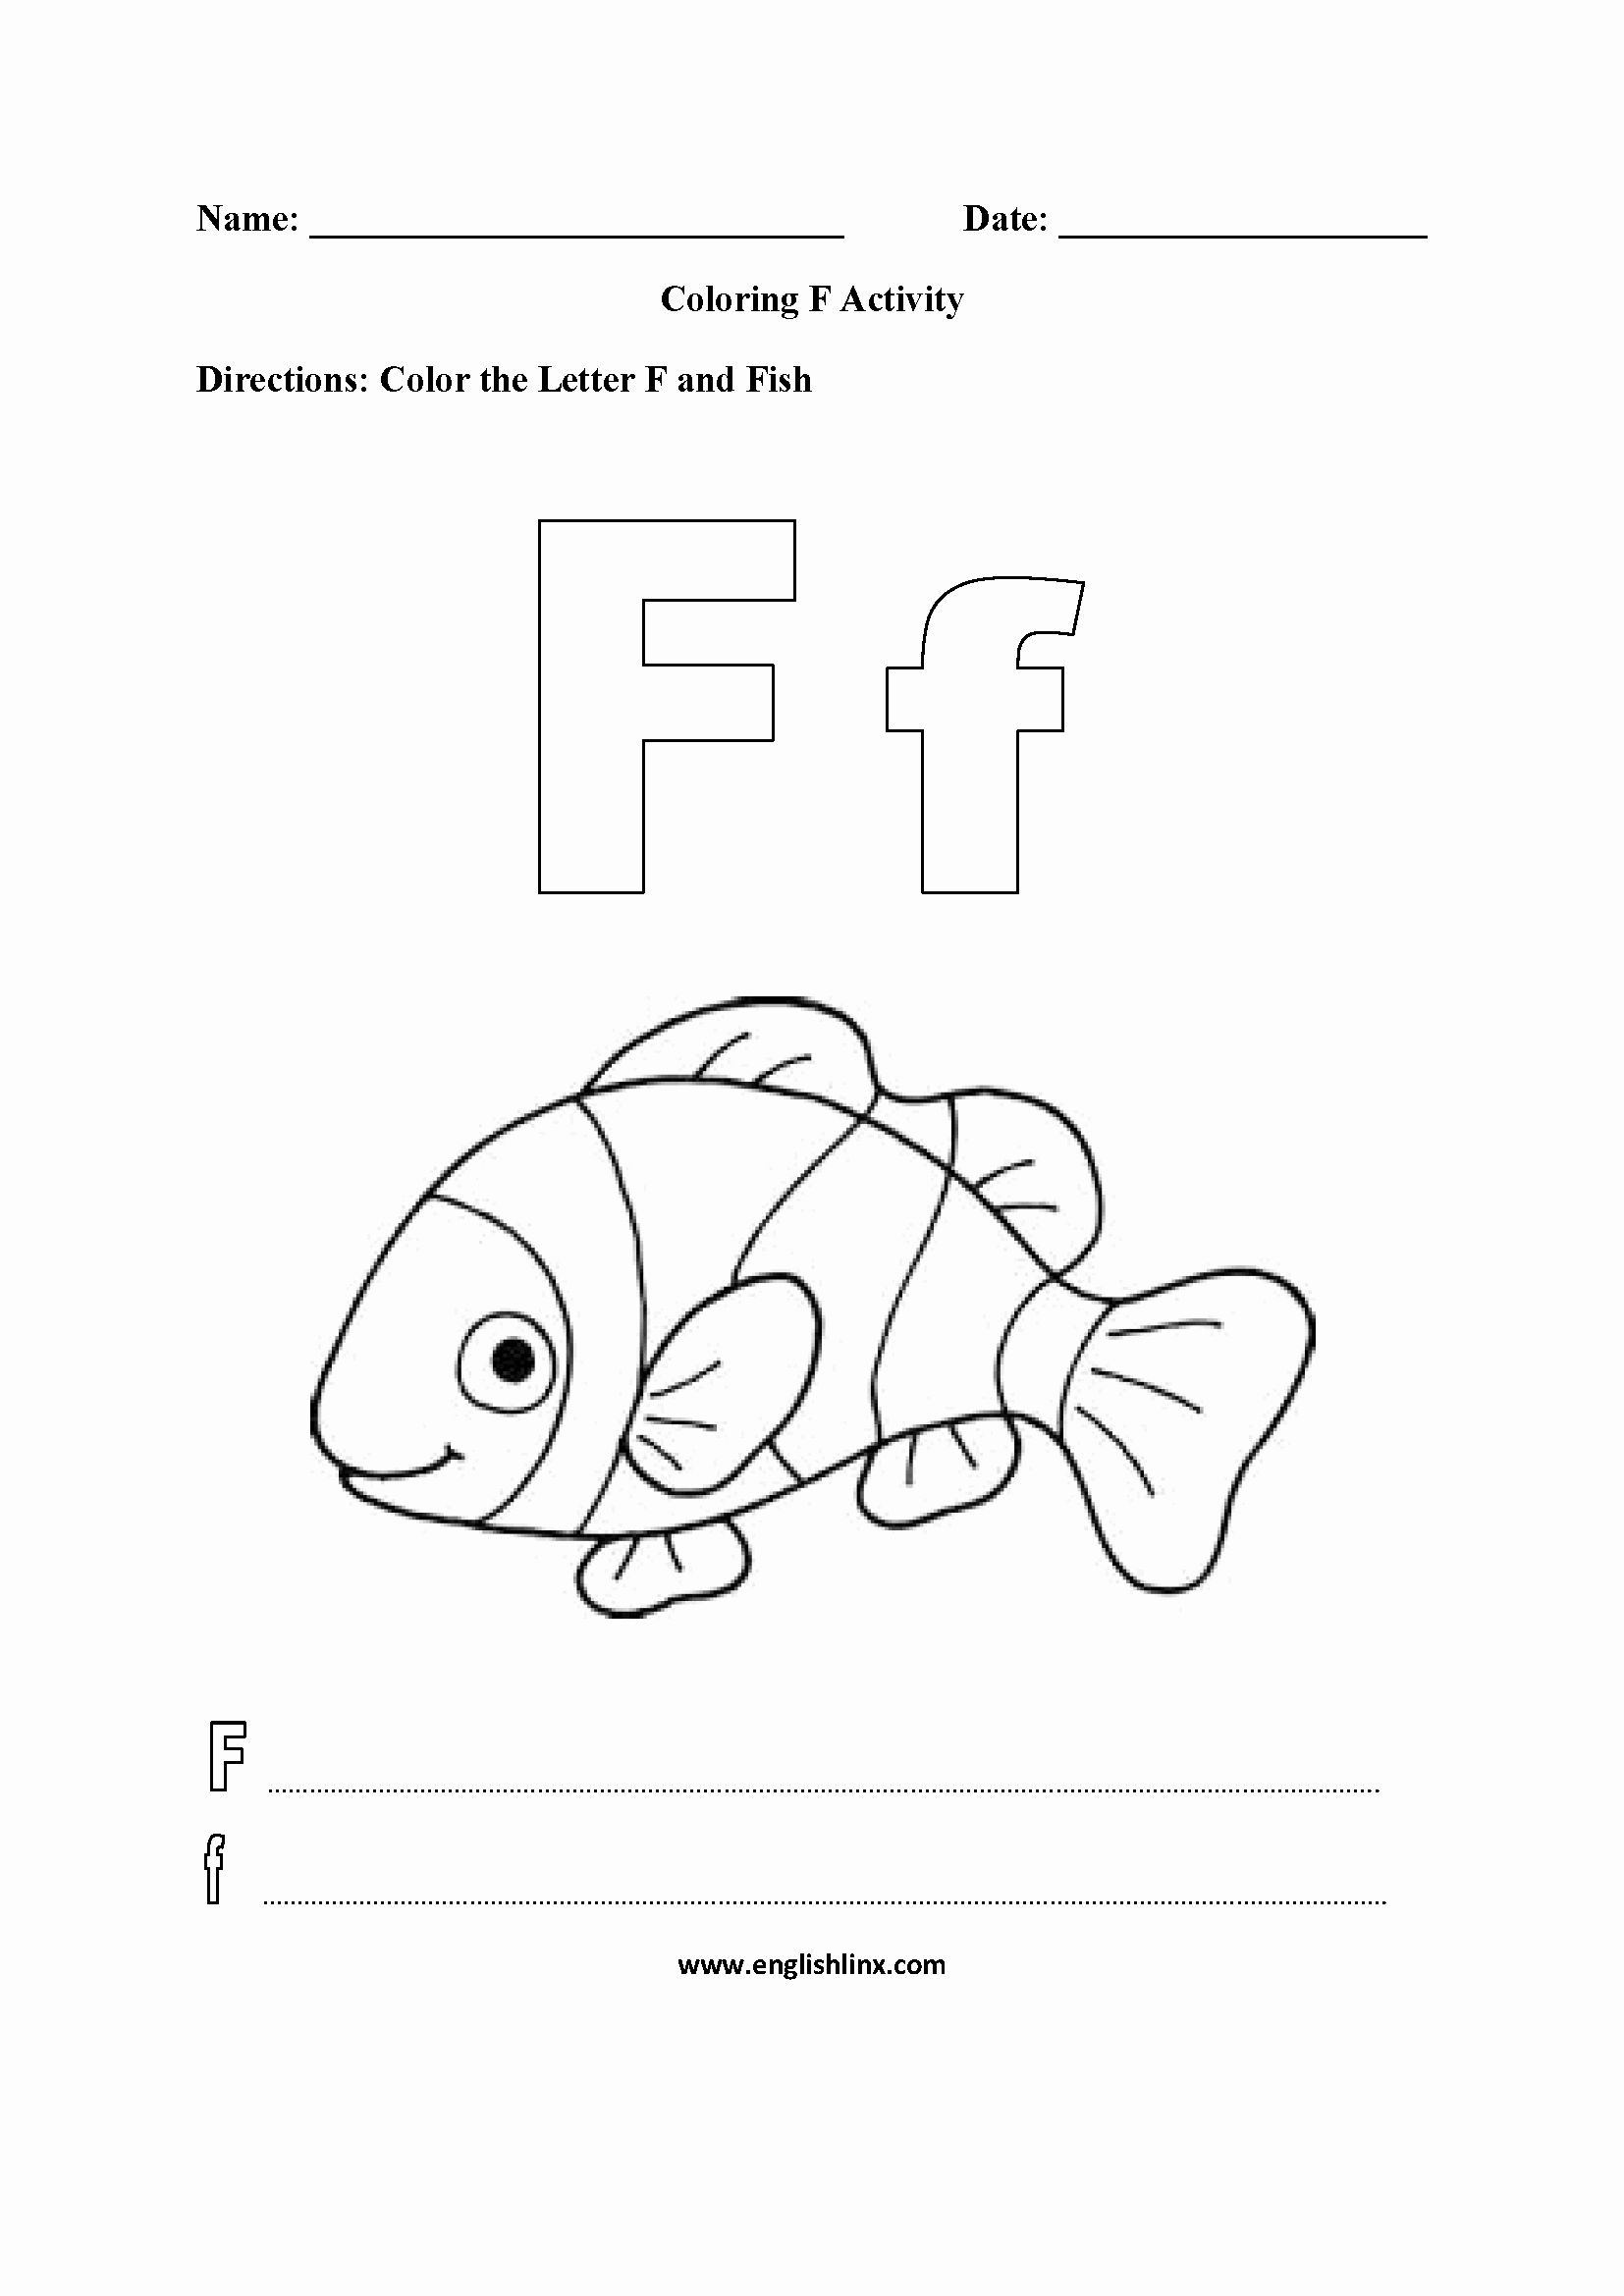 The Letter F Coloring Page Unique Letter F Coloring Page